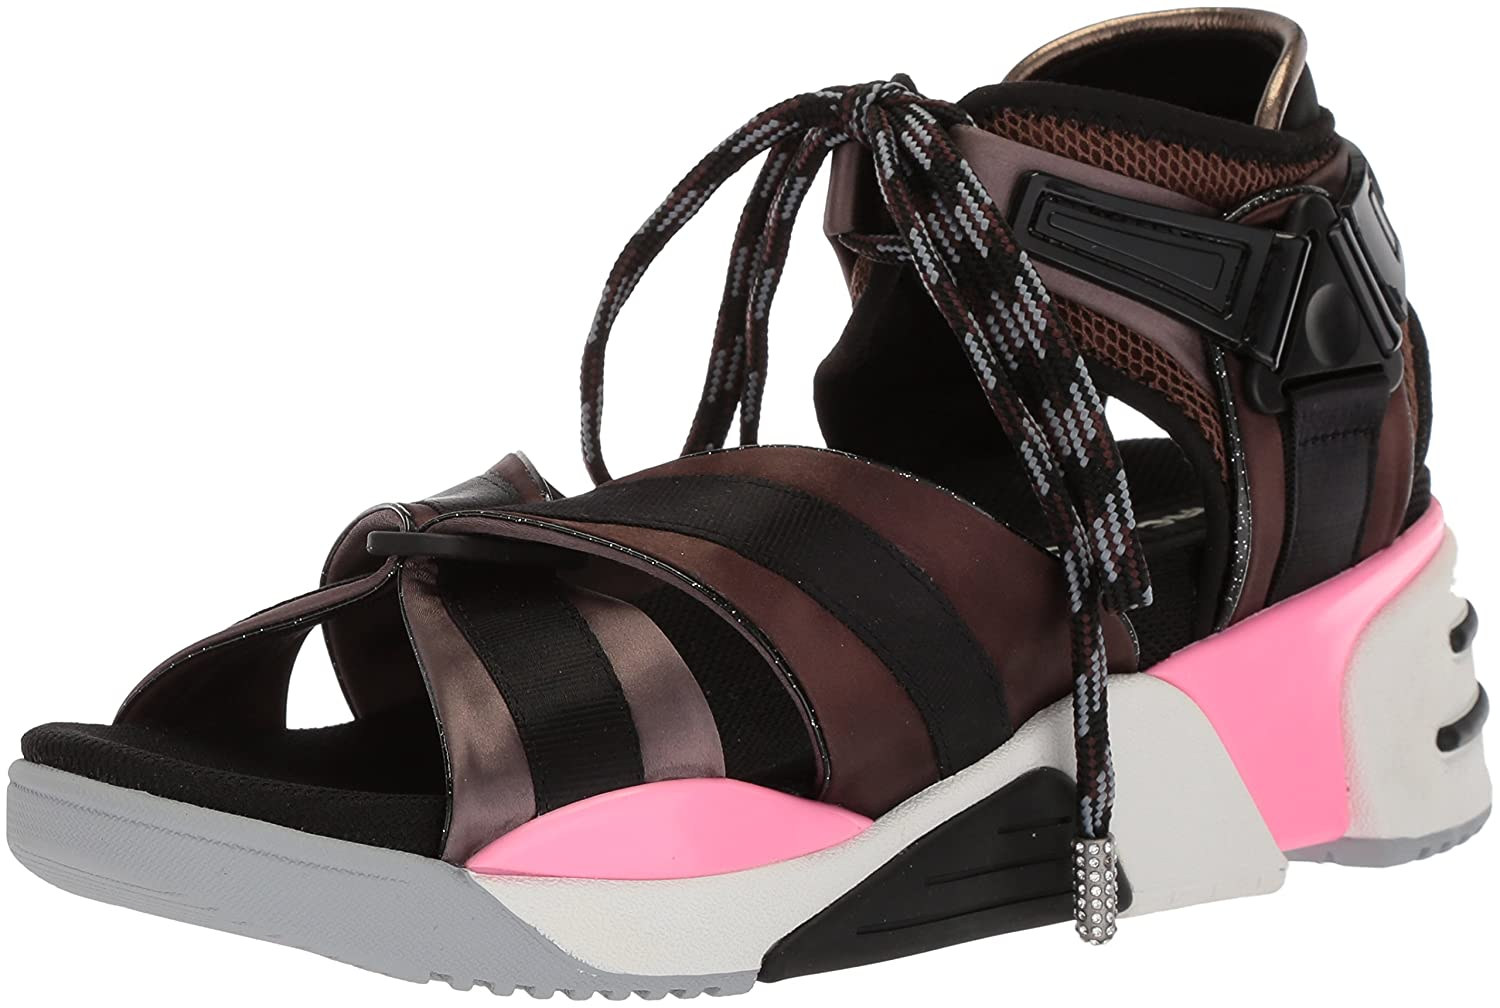 Marc Jacobs Women's Somewhere Sport Sandal B075Y63677 37 M EU (7 US)|Black/Multi